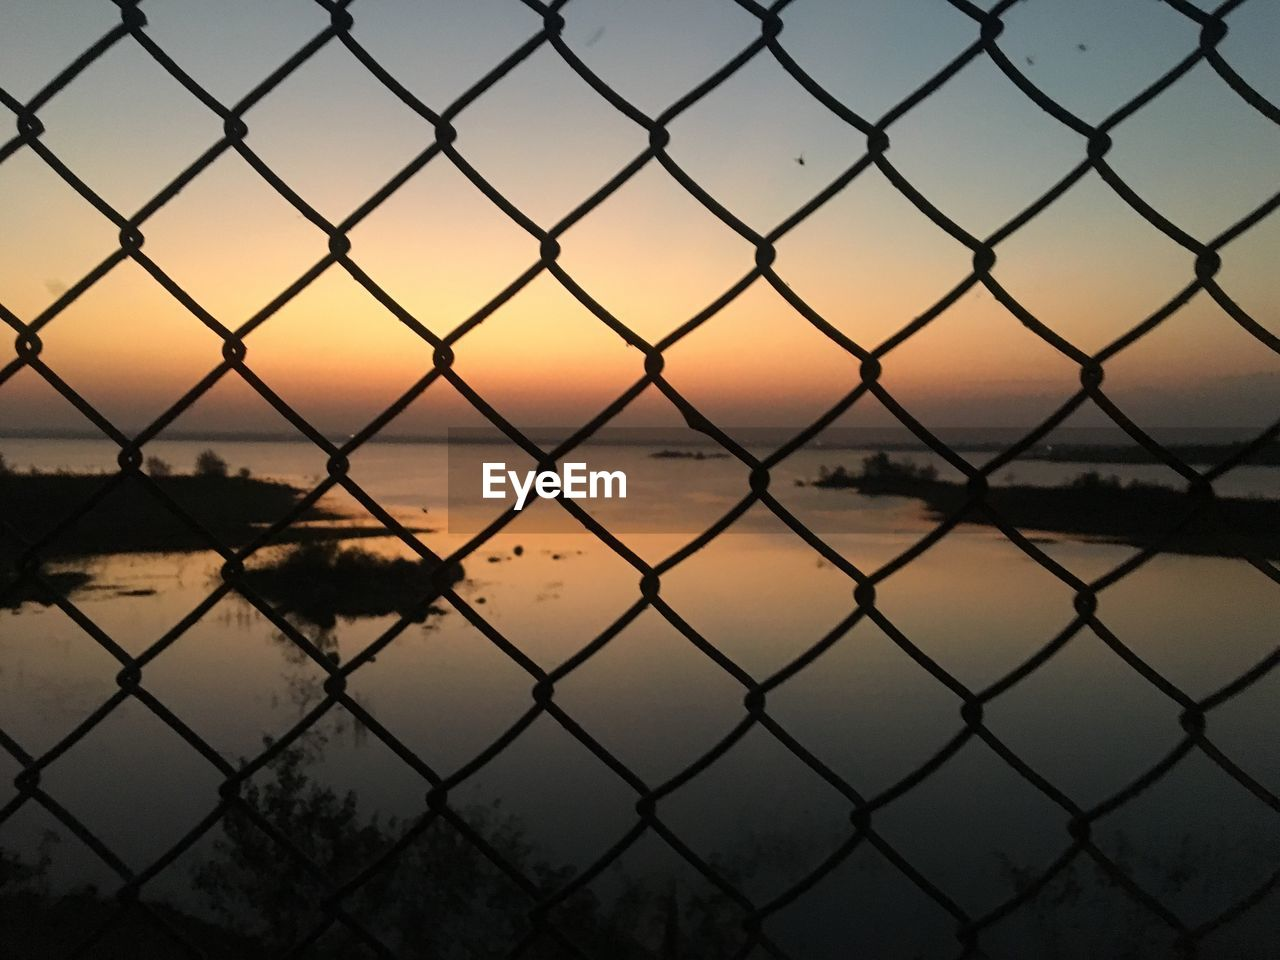 fence, security, safety, barrier, boundary, protection, sky, chainlink fence, sunset, metal, nature, no people, scenics - nature, water, focus on foreground, outdoors, backgrounds, pattern, beauty in nature, crisscross